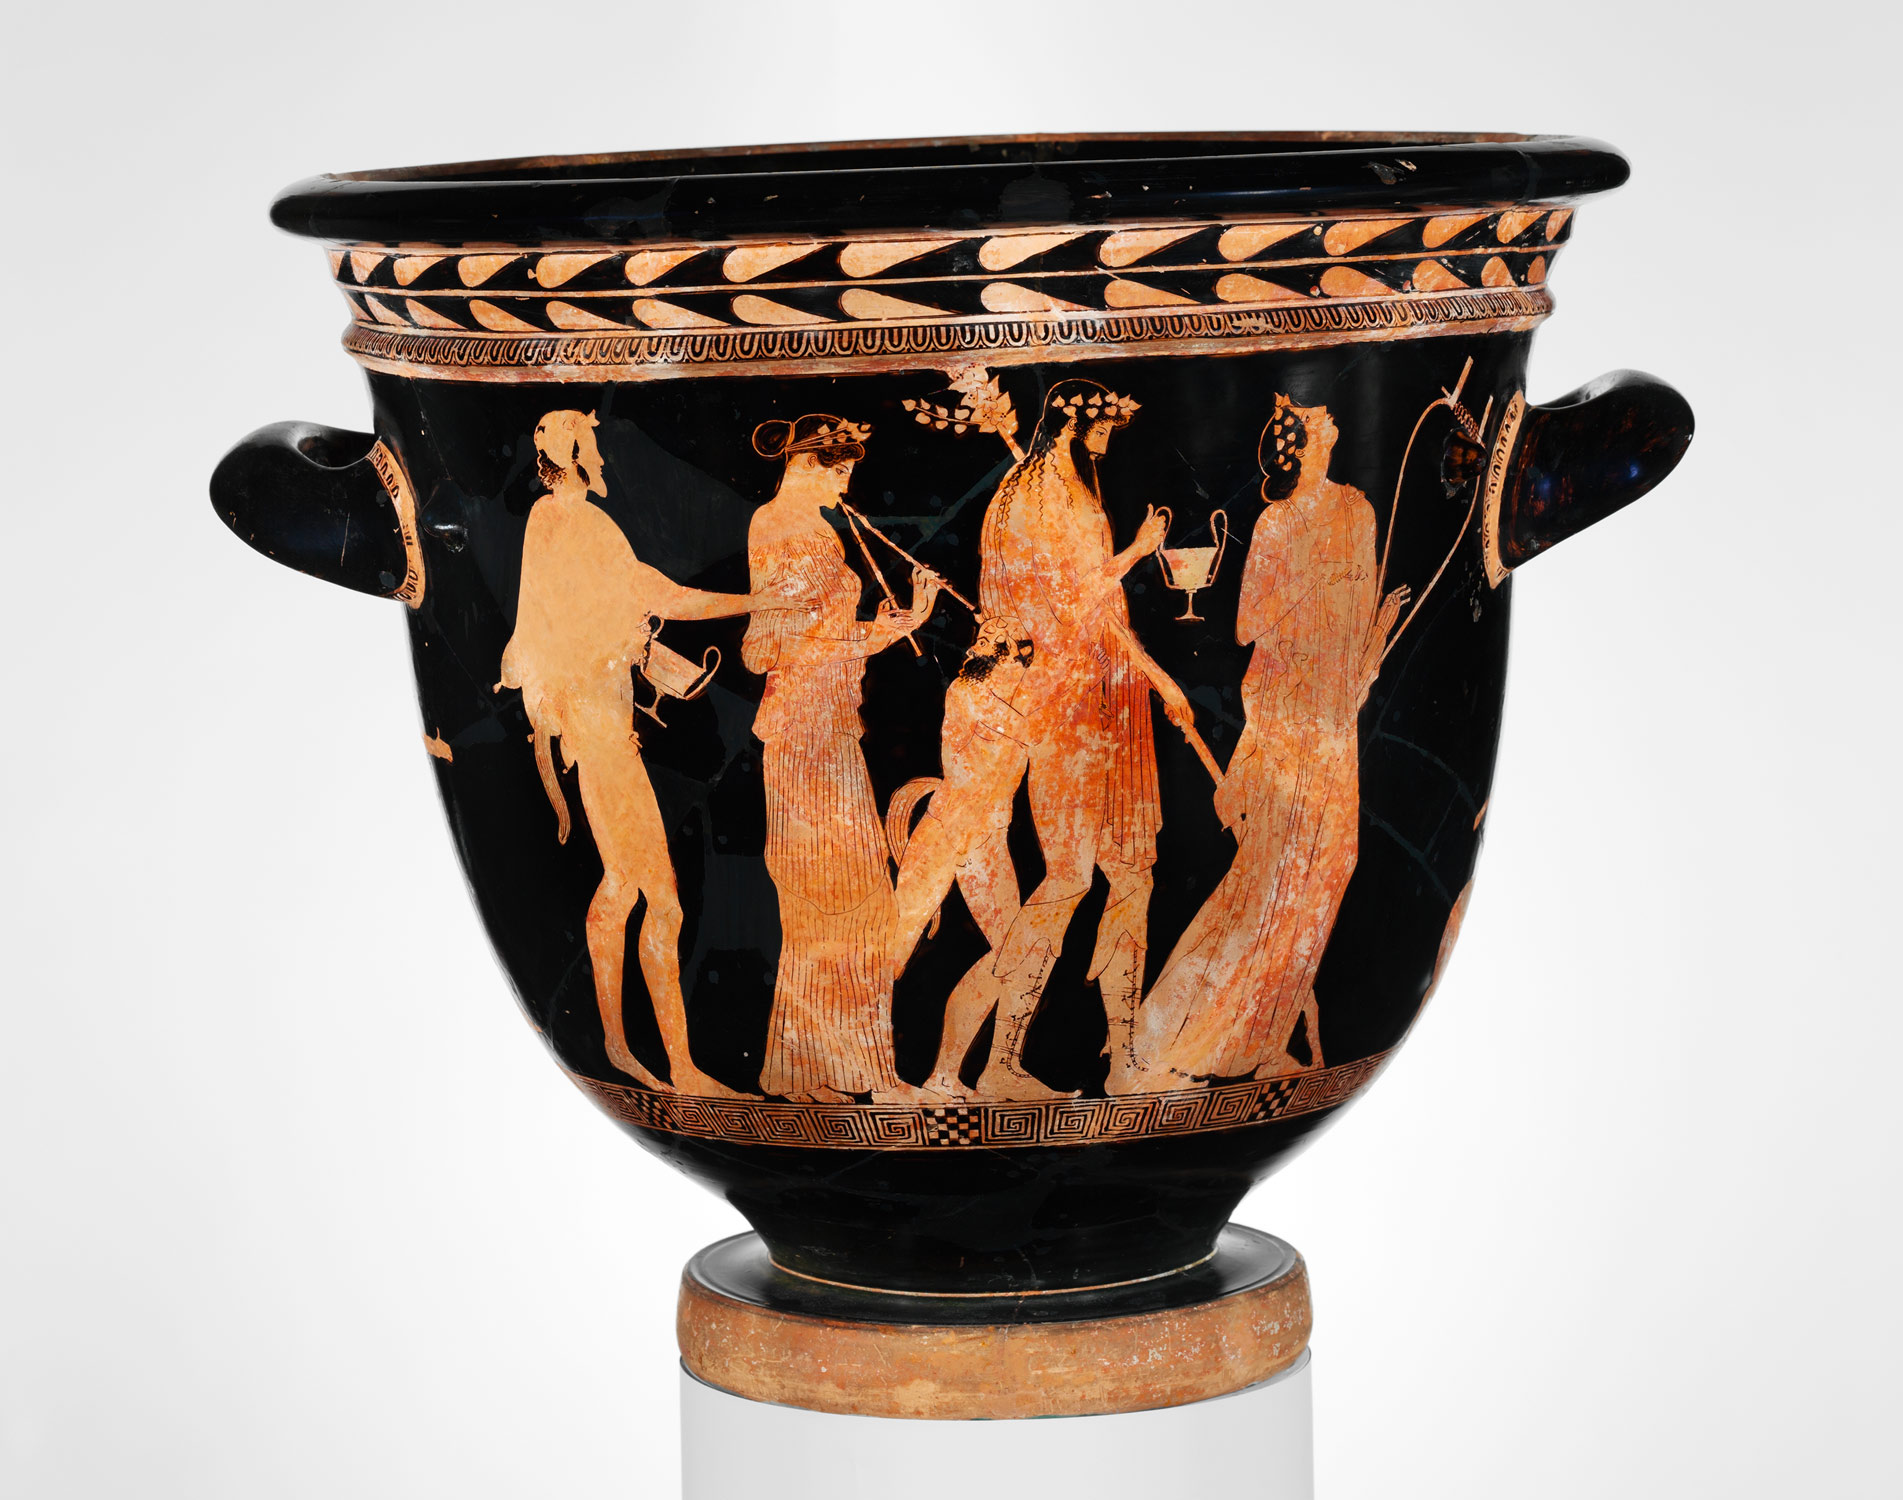 Terracotta bell‑krater (bowl for mixing wine and water)